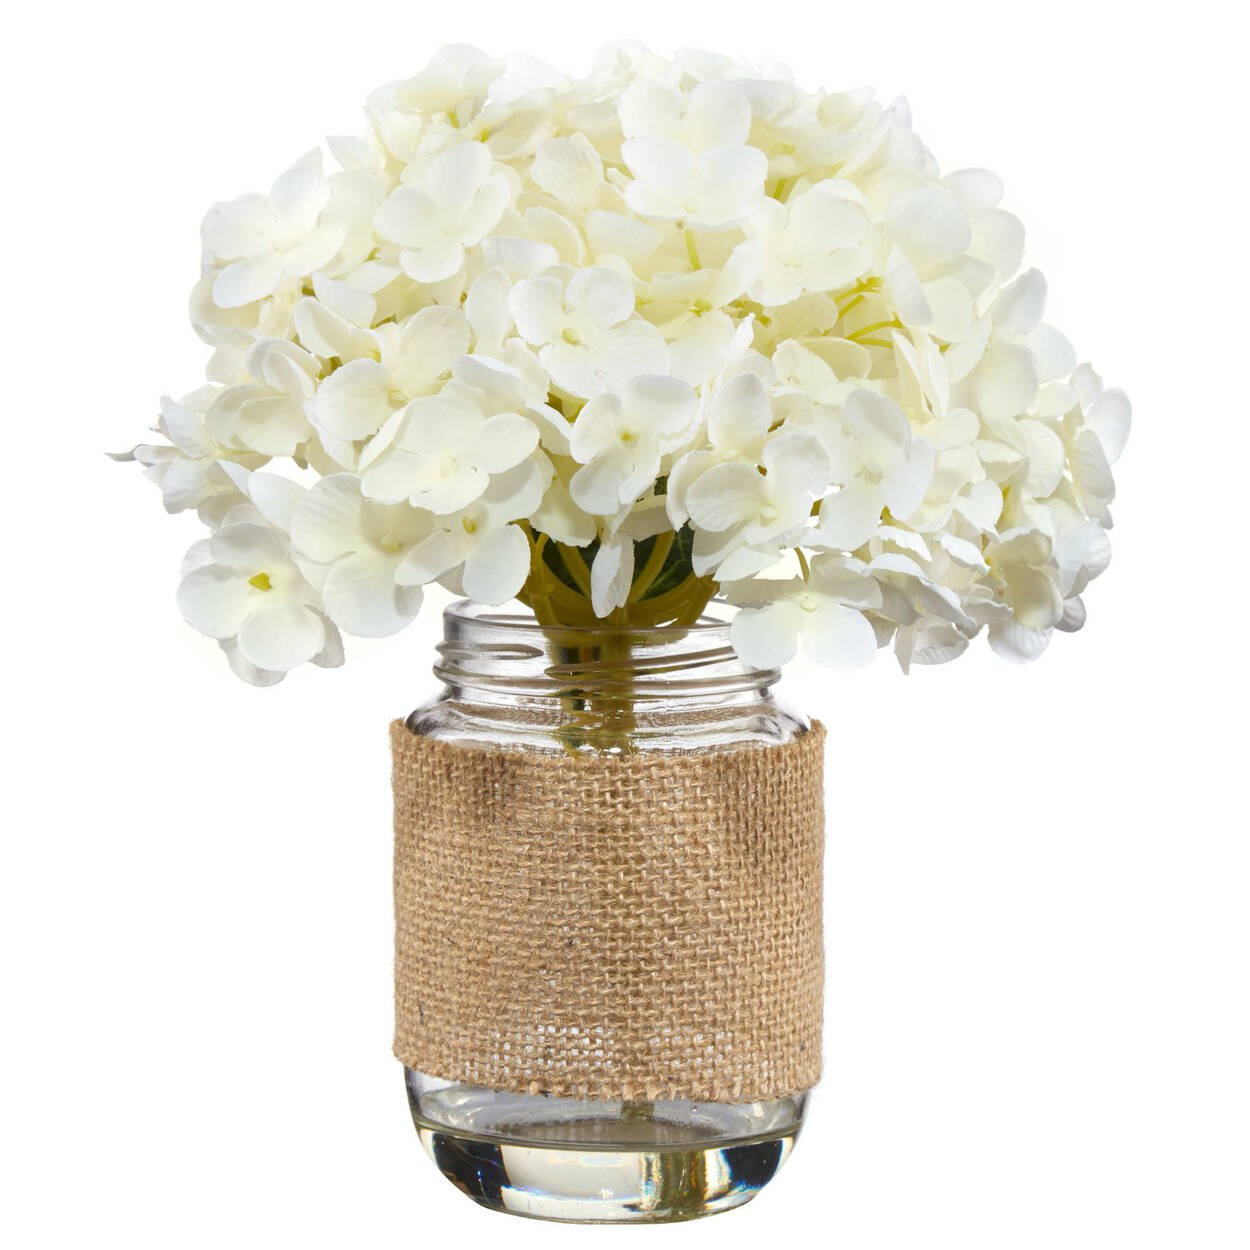 Decorative Flowers in a Jar